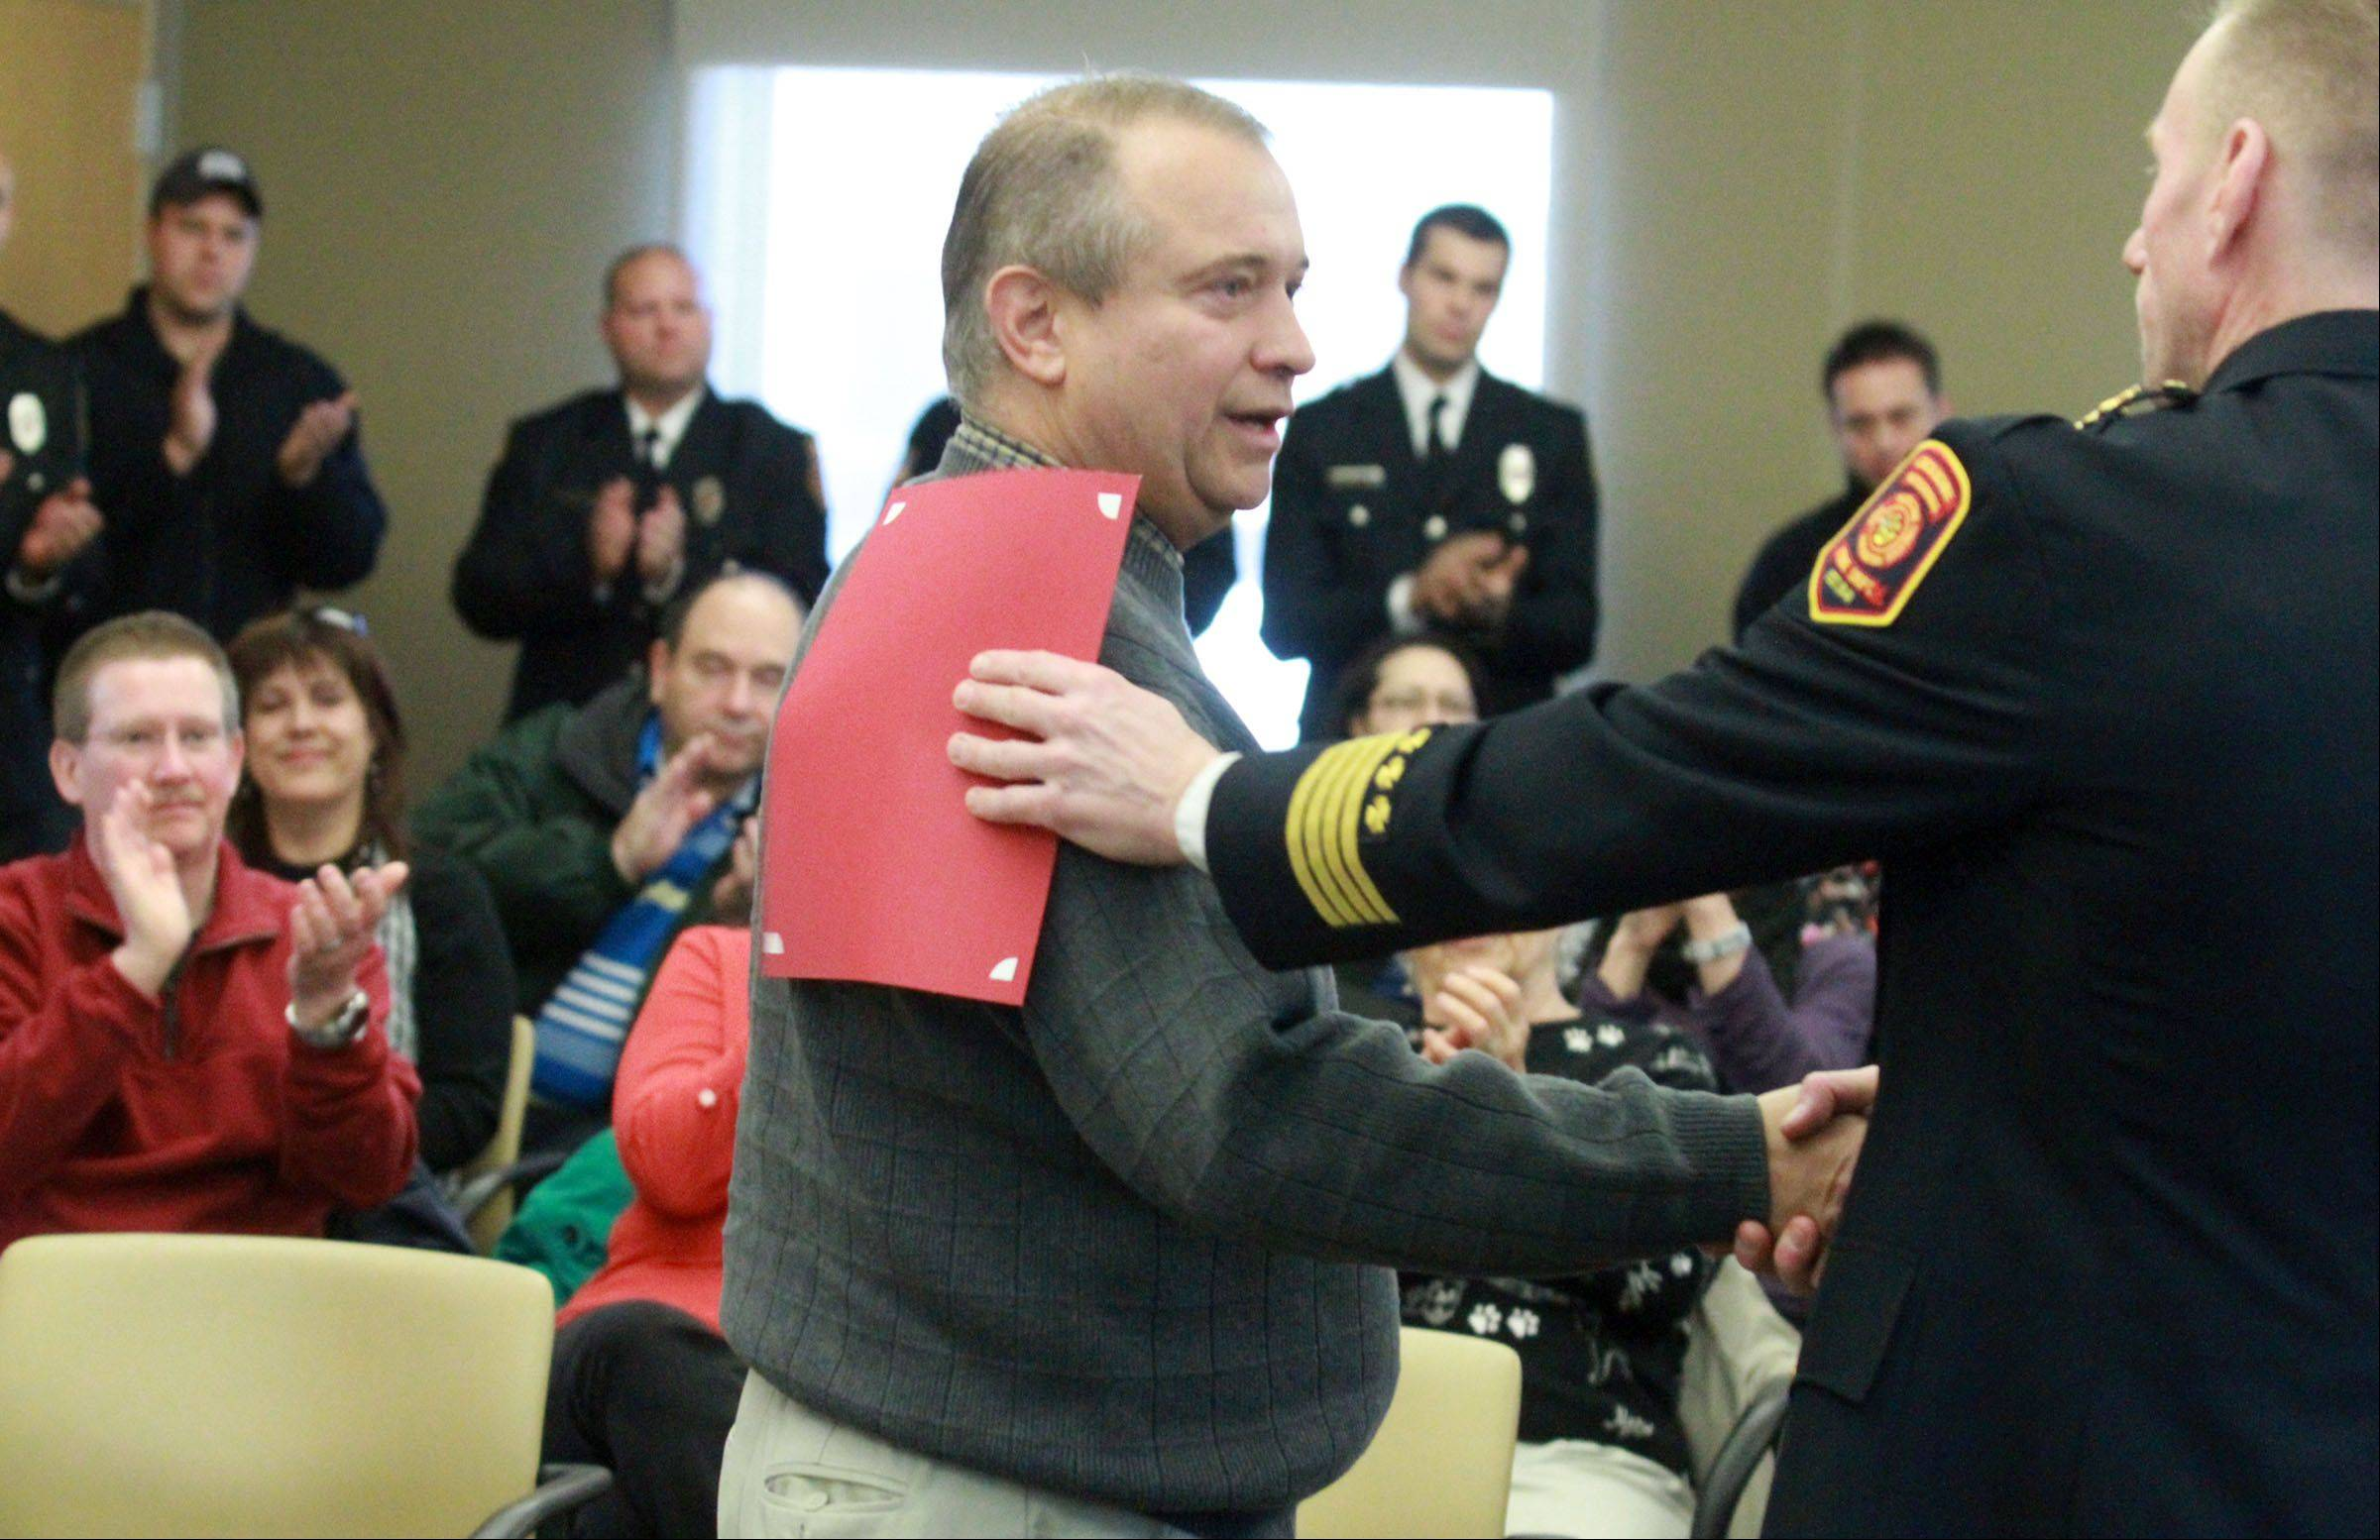 Fernando Meir, a Stevenson High School employee, is recognized Saturday by Deputy Chief Tom Krueger for saving a family trapped in a fire at a home on Apple Hill Lane in unincorporated Lake County near Lincolnshire.